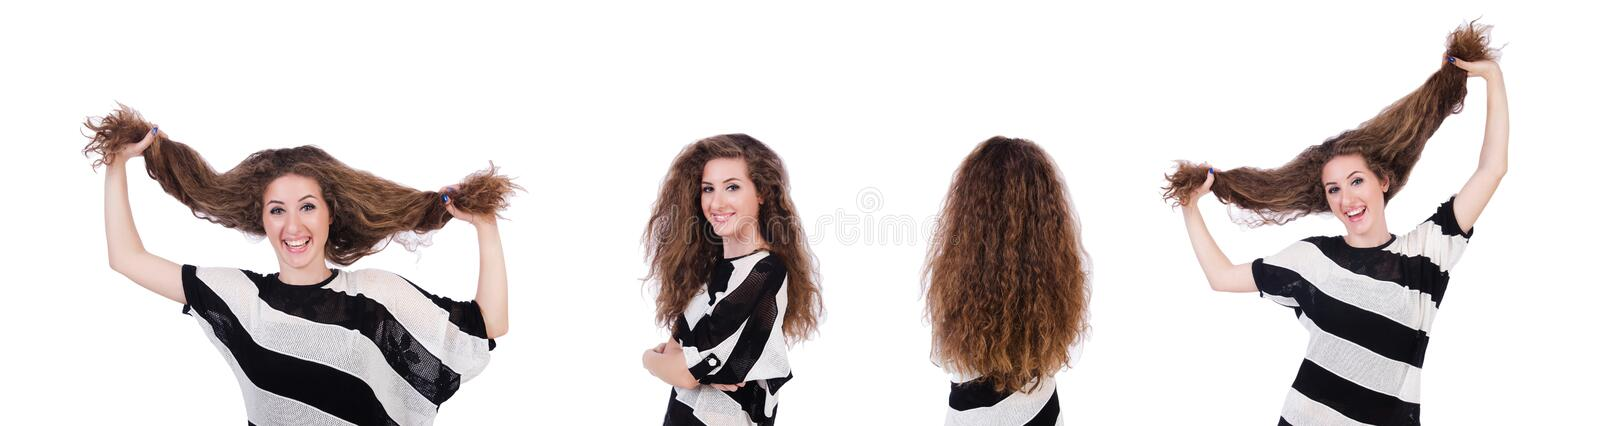 Woman with long hair haircut royalty free stock photography